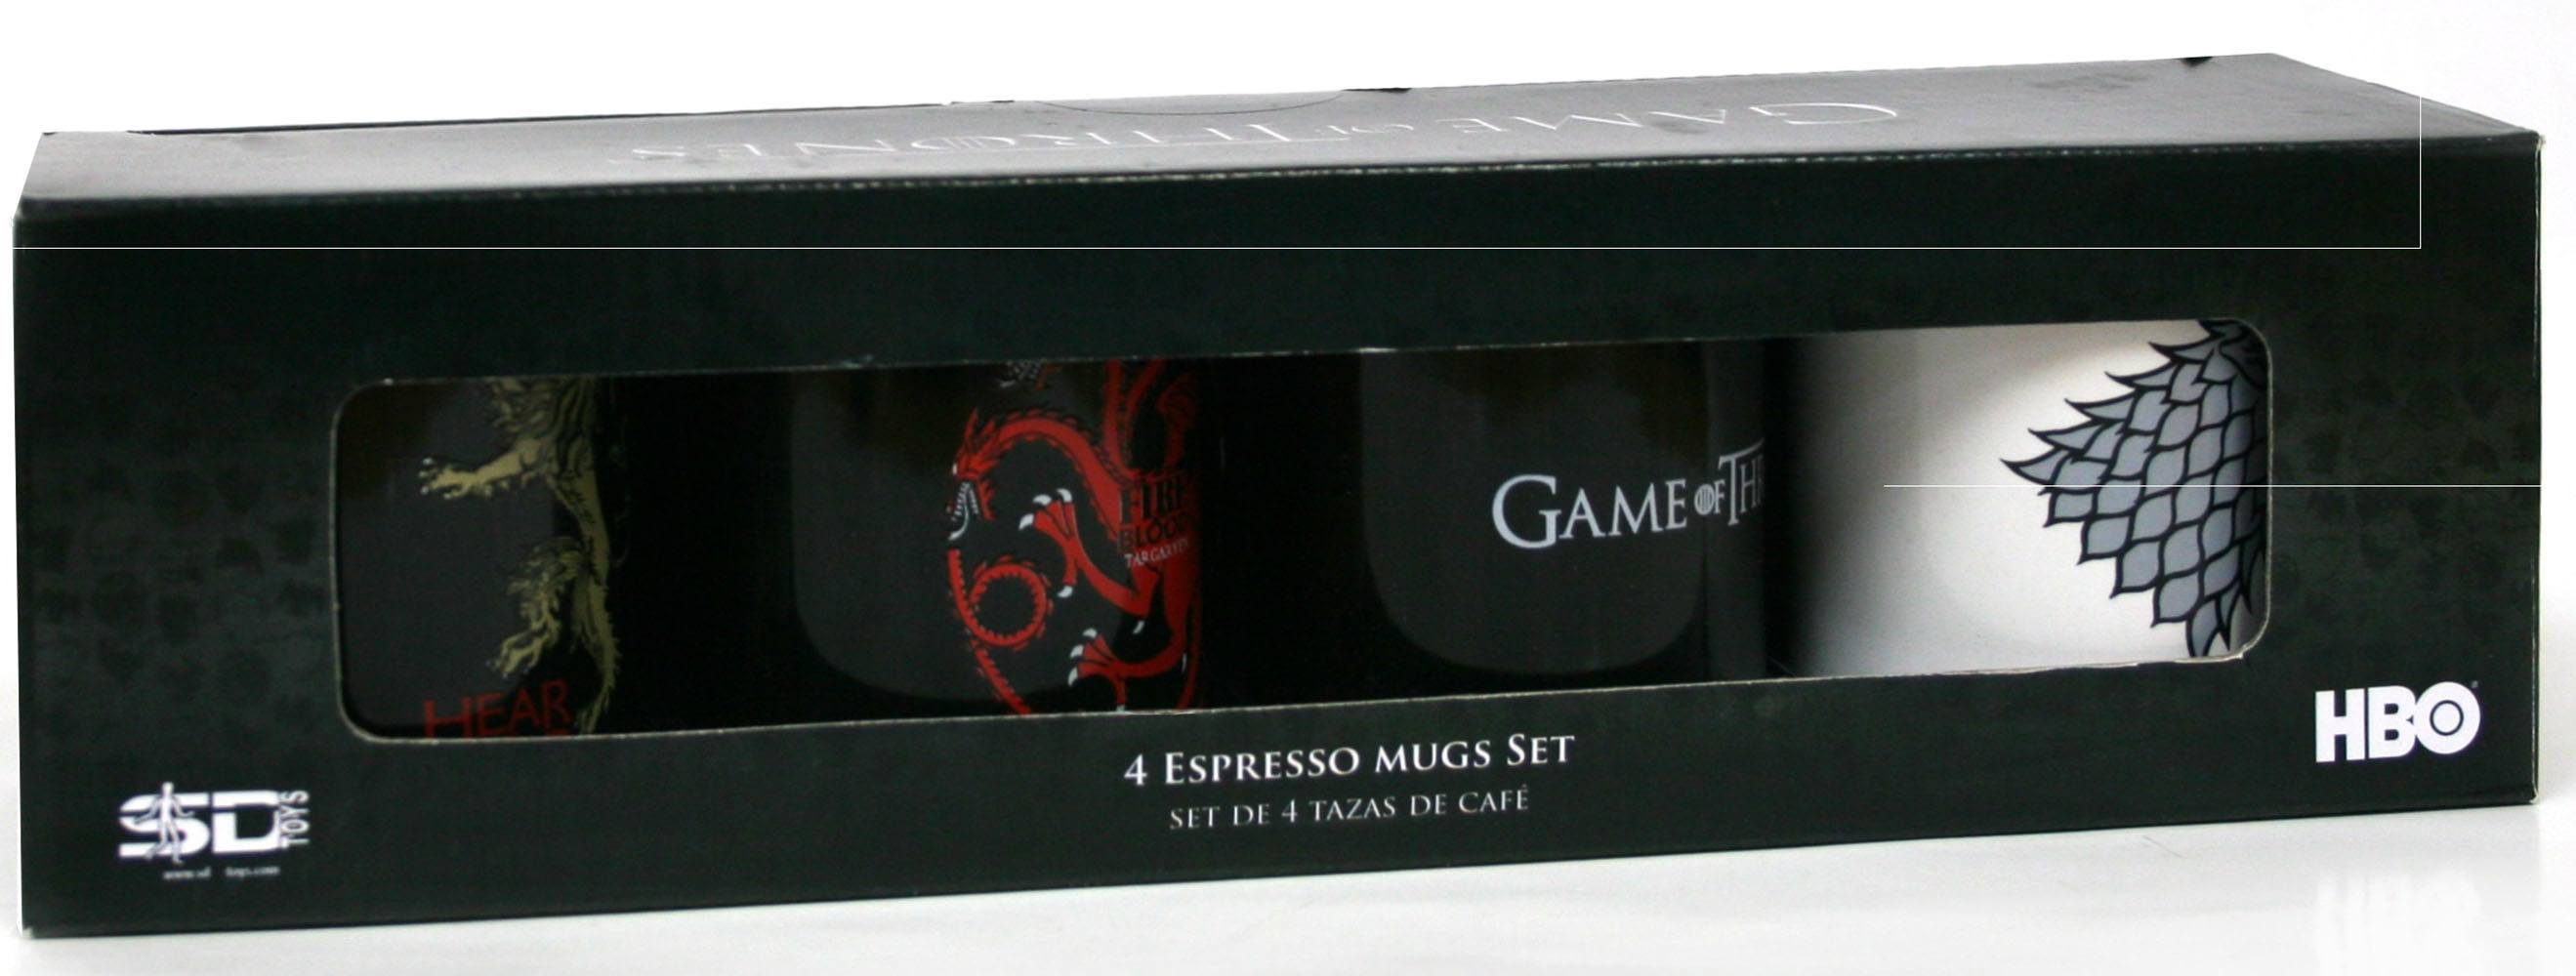 Game of Thrones Espresso Mugs Set